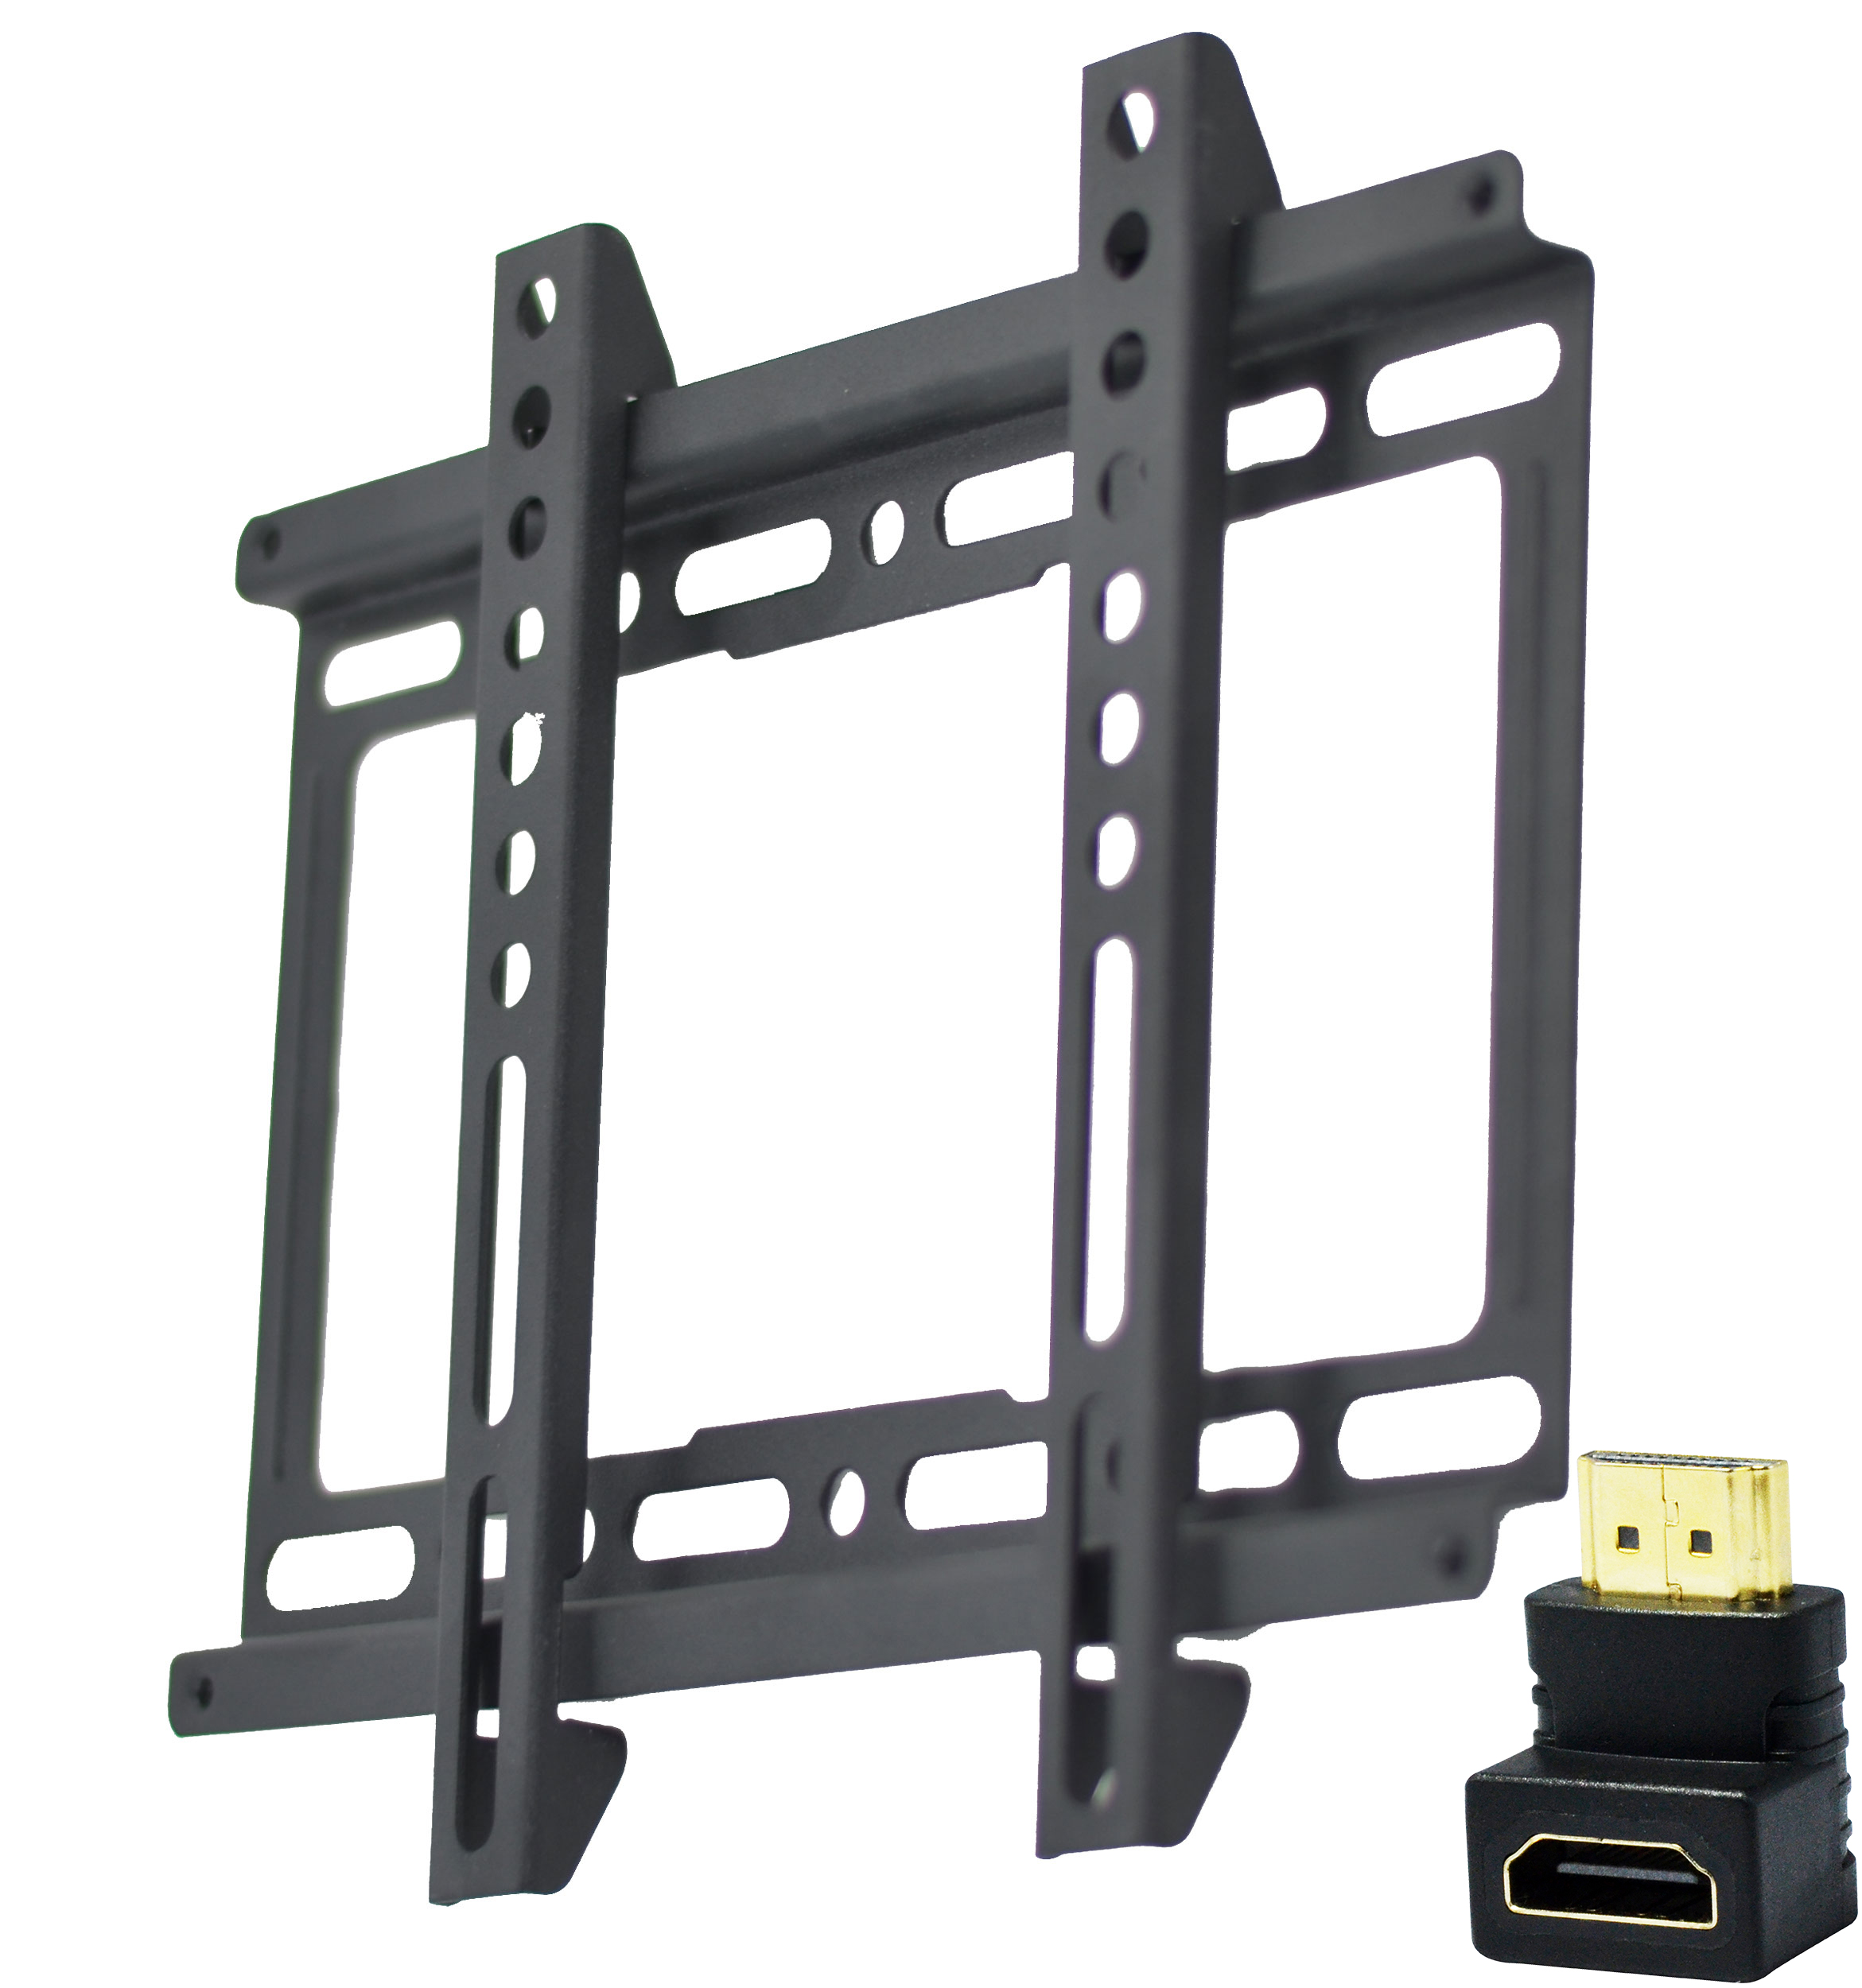 ultra slim tv wall mount bracket w/ hdmi connector